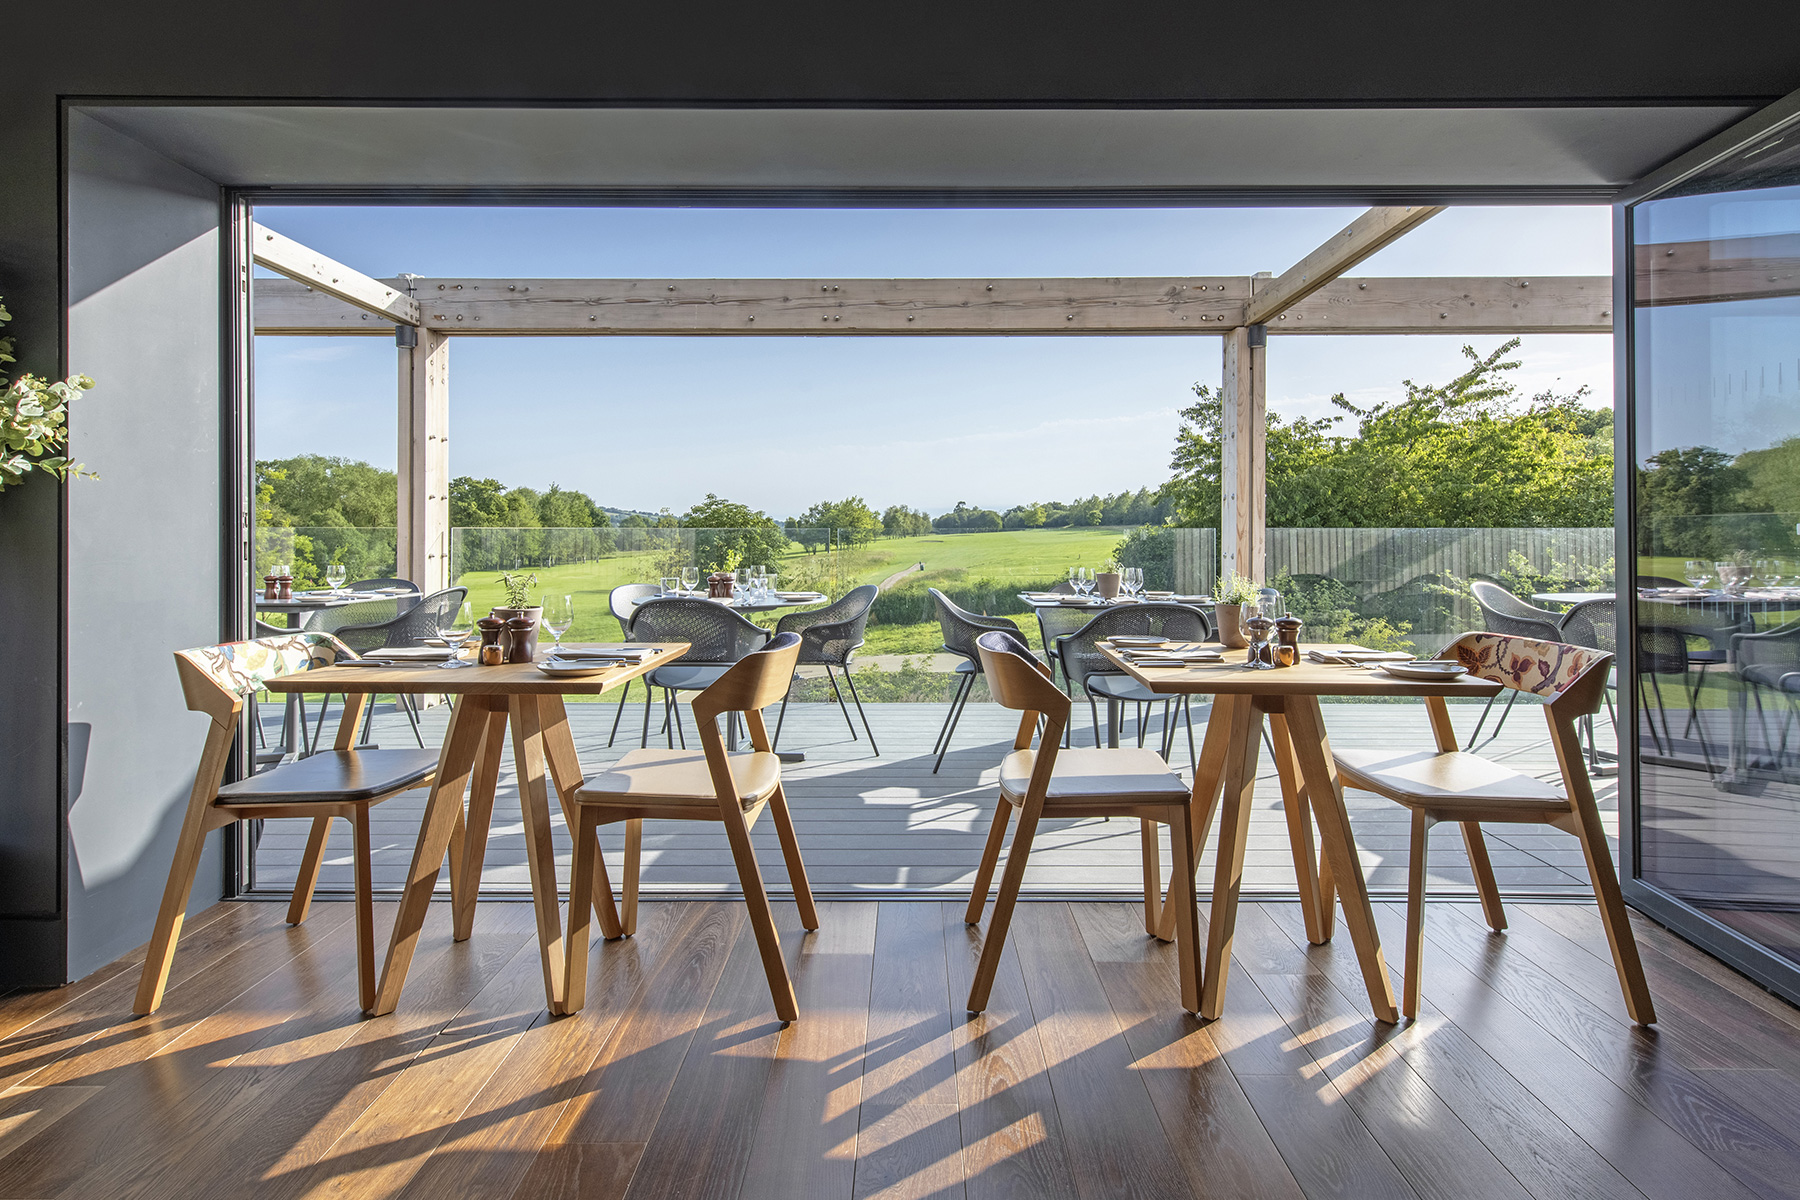 2019.07-dining-table-with-view